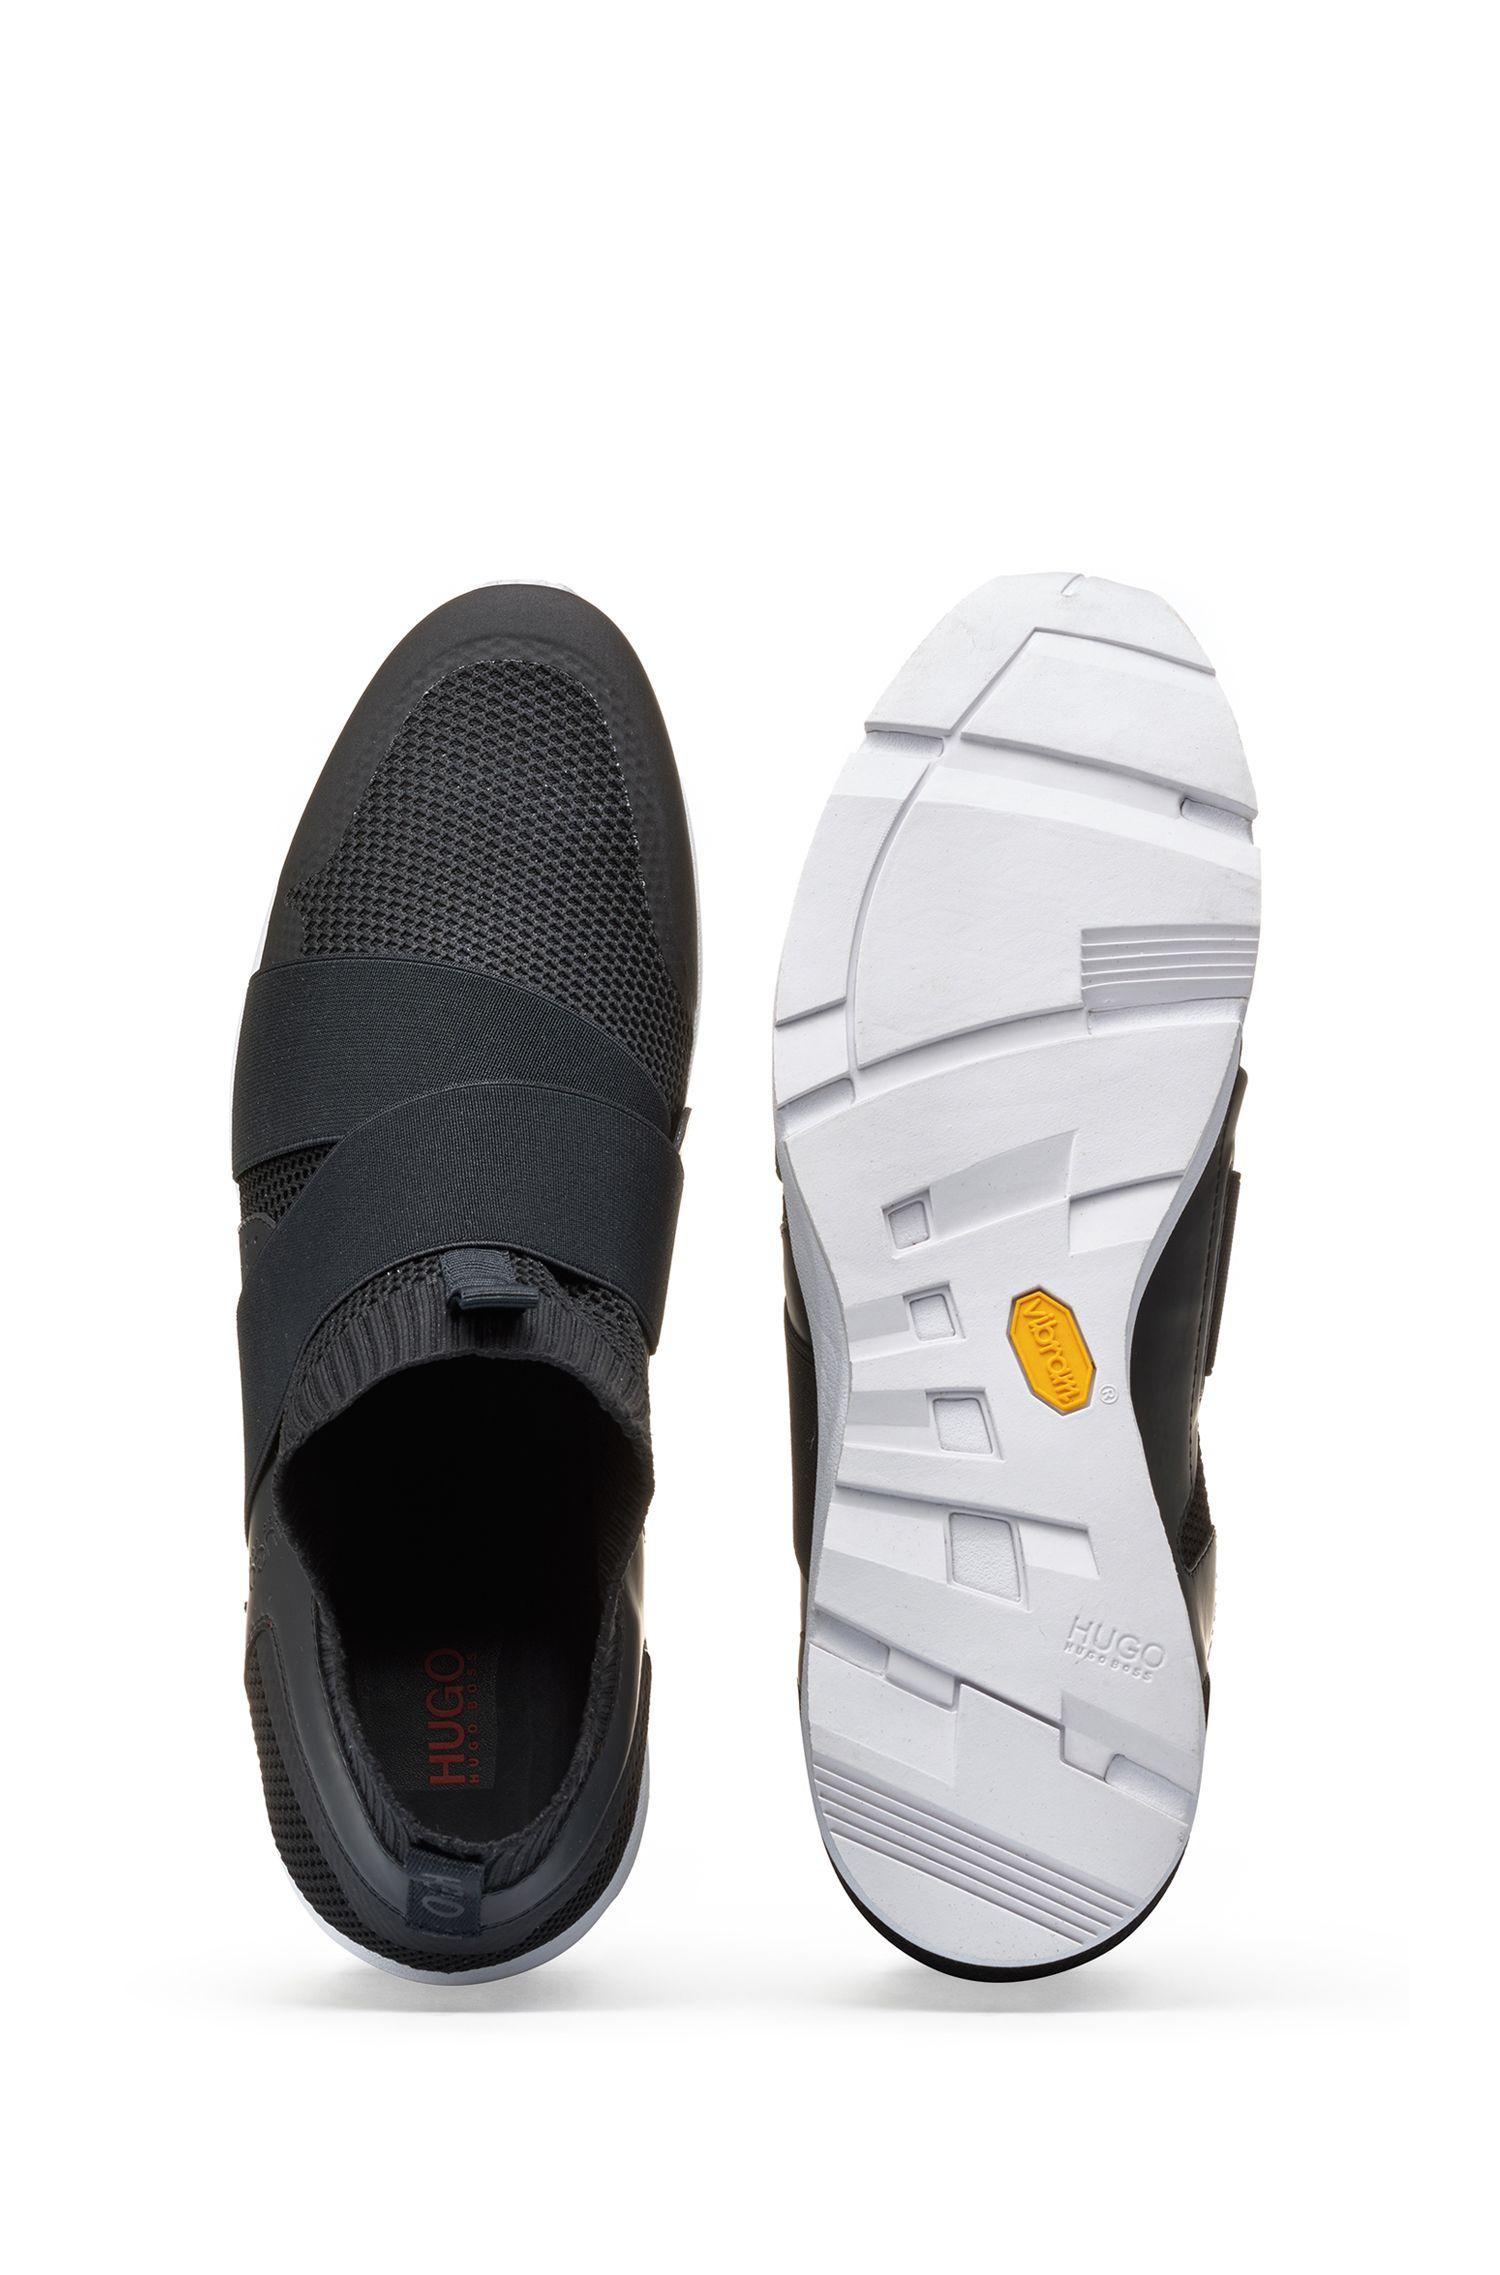 Sneakers slip-on ibride con suola Vibram, Nero